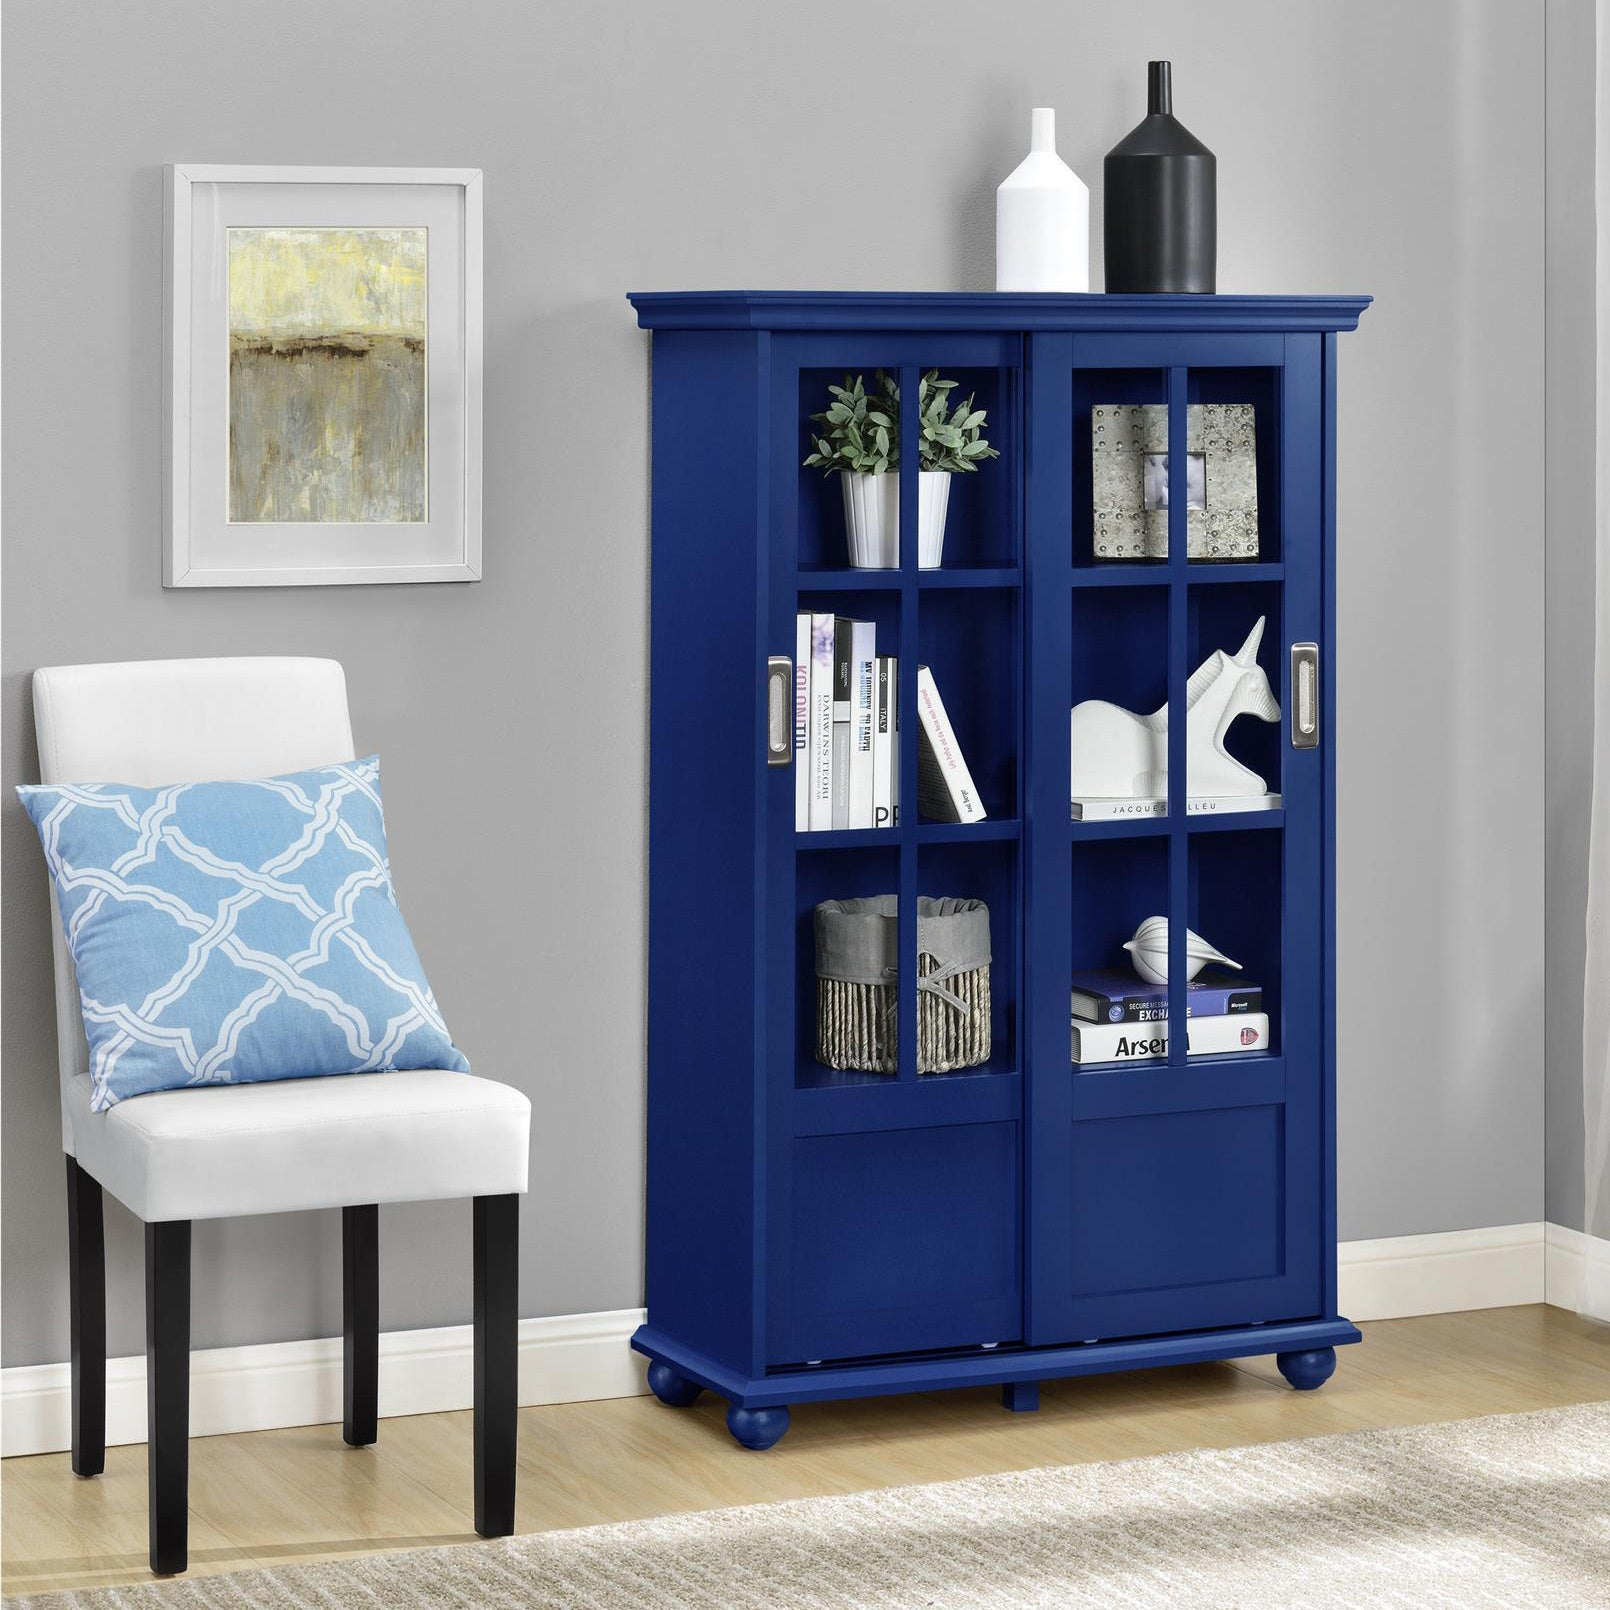 Ameriwood Home Aaron Lane Blue Bookcase With Sliding Glass Doors